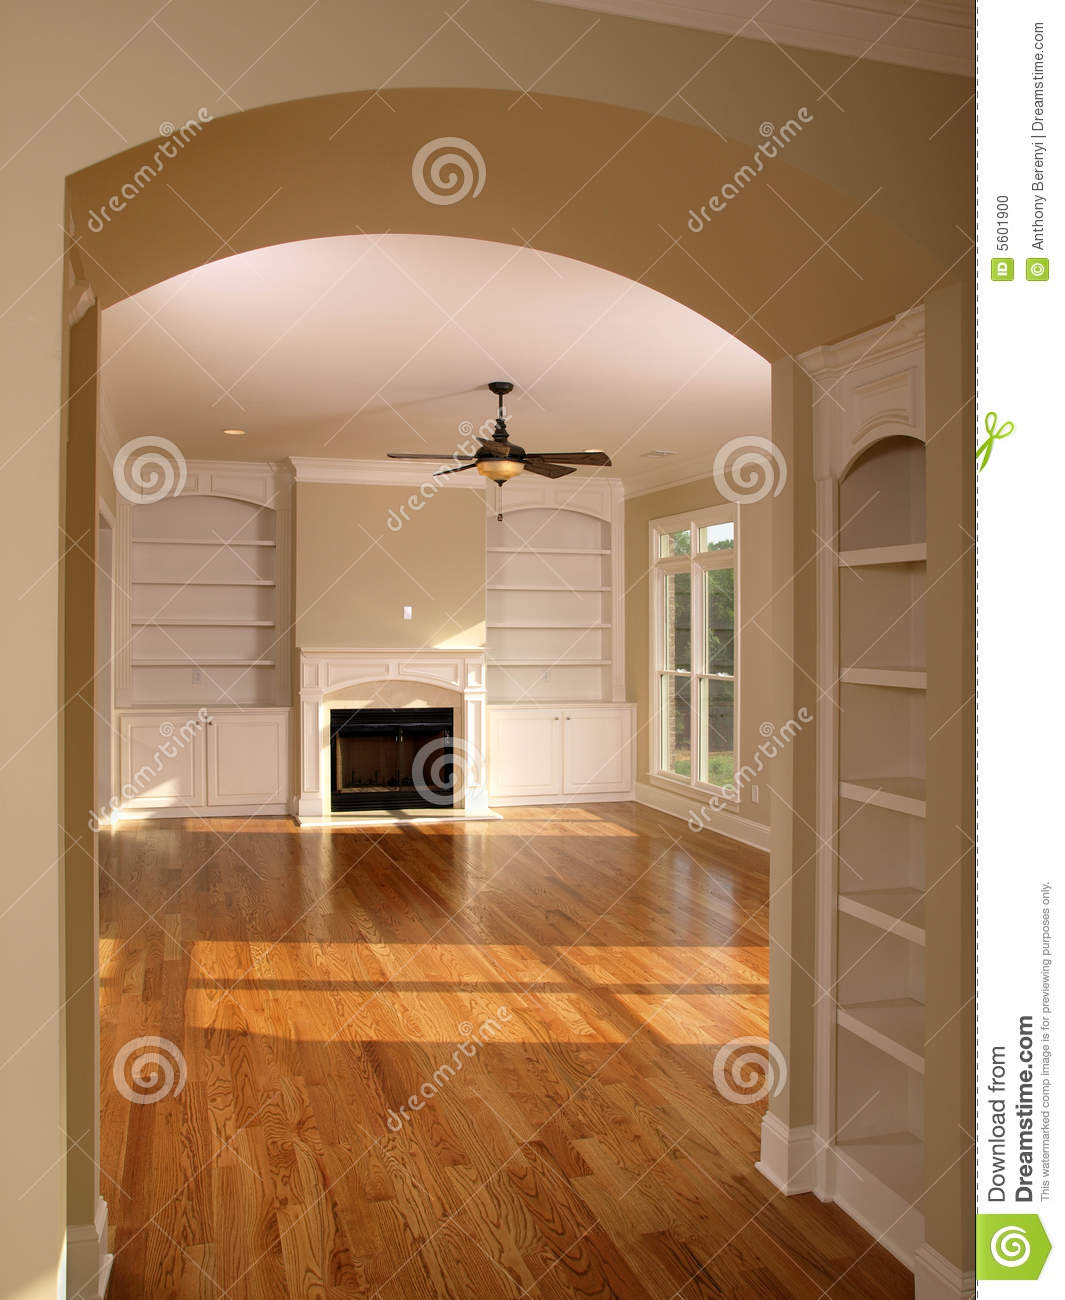 Luxury Kitchen Room Interior Bright Wooden Stock Vector: Luxury Living Room With Arched Entrance Stock Photo